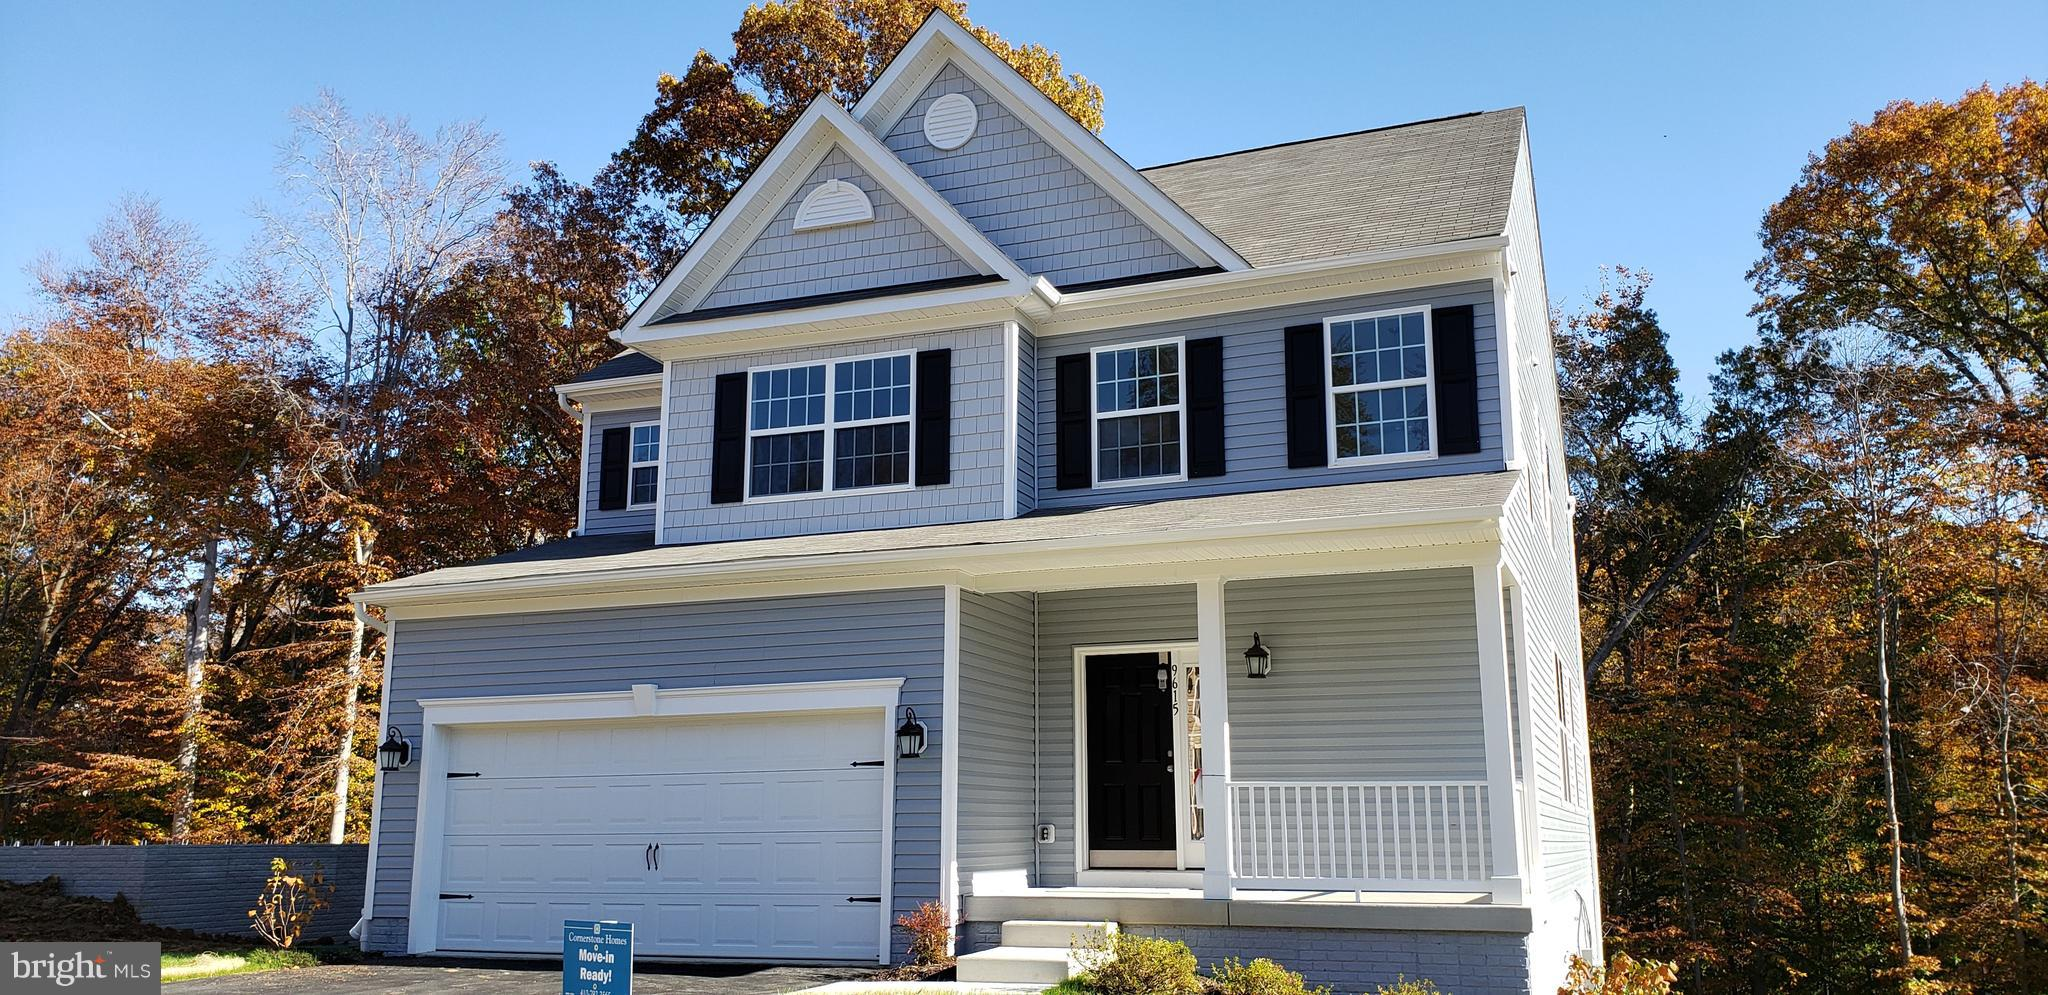 Brand new home ready for immediate settlement. Come visit Cornerstone Homes Southern Howard County p